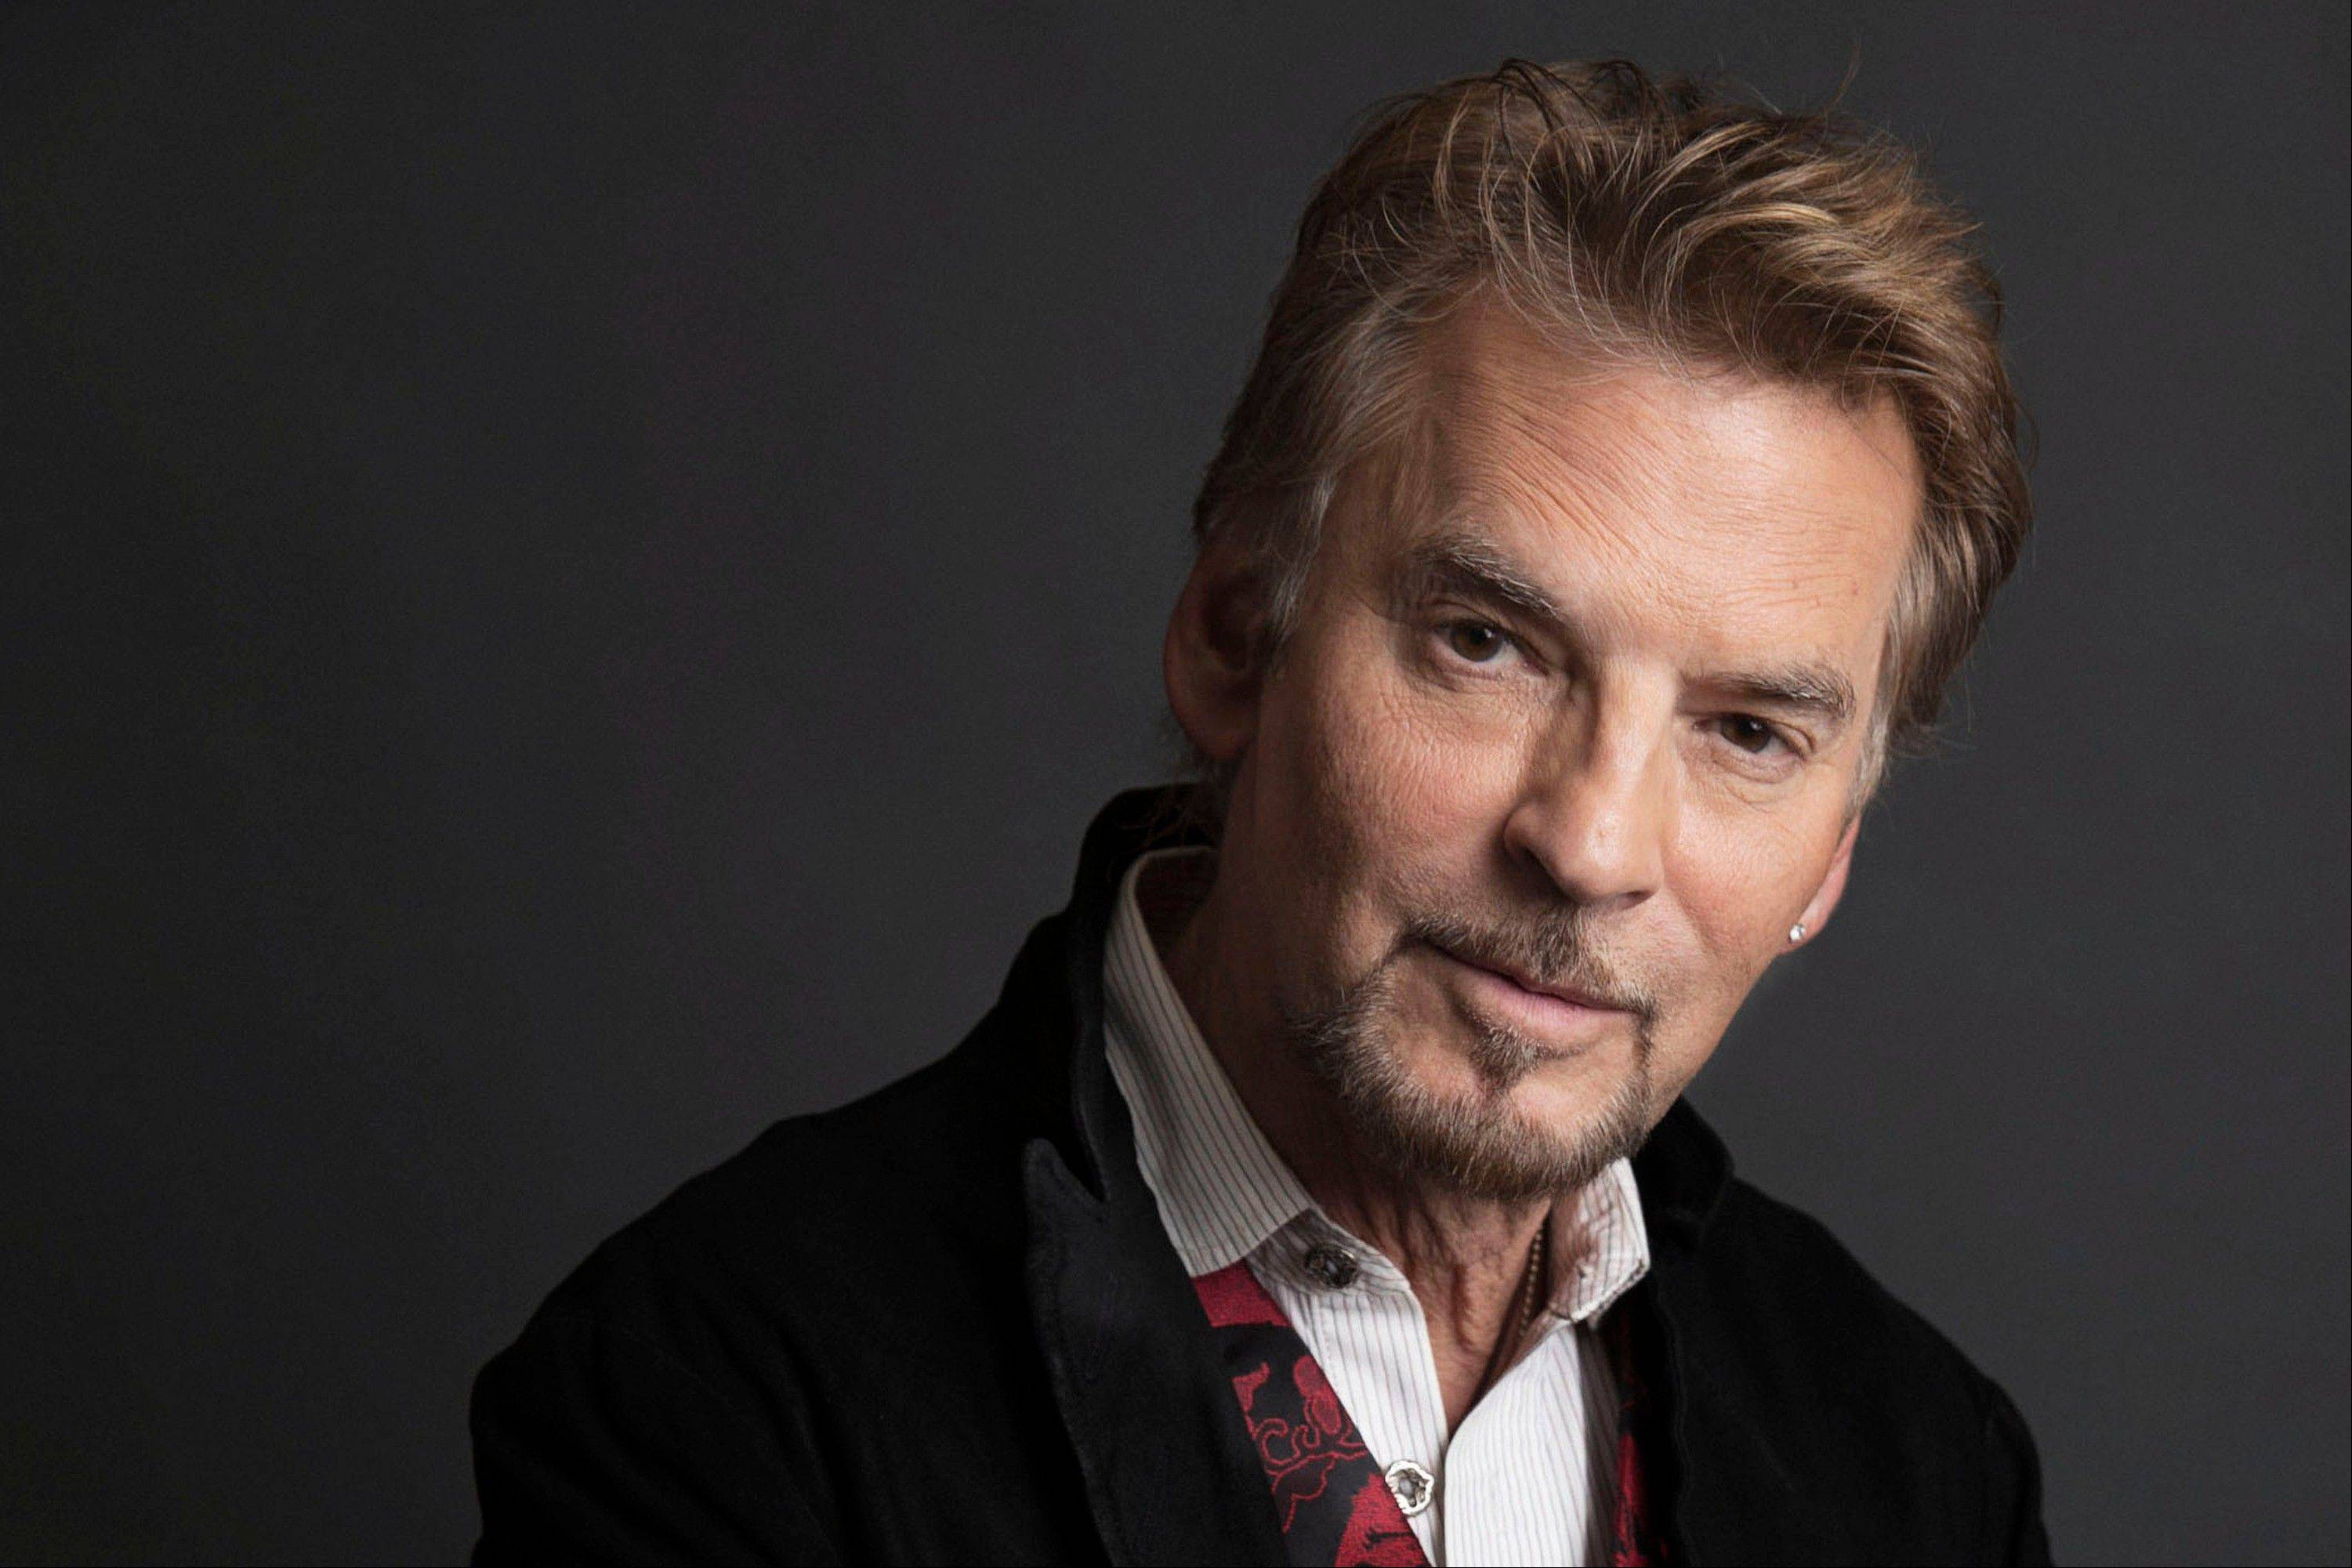 American singer-songwriter Kenny Loggins thought about retiring. Instead, he's making new music with his band Blue Sky Riders.